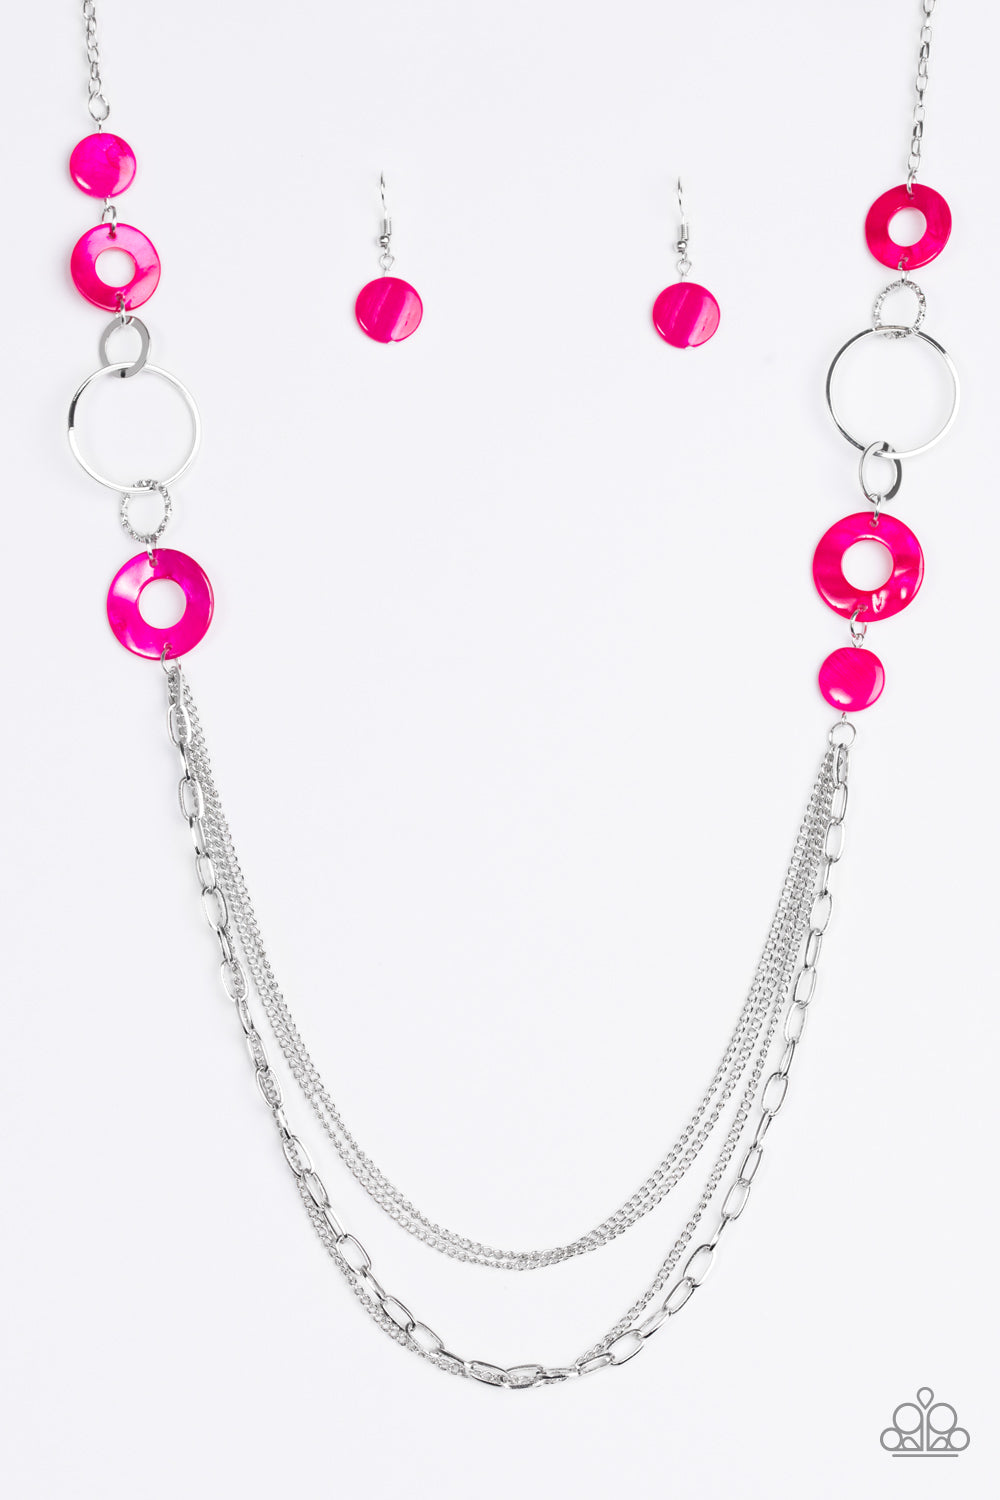 Paparazzi Accessories - Tropical Sunsets - Pink Necklace Set - JMJ Jewelry Collection